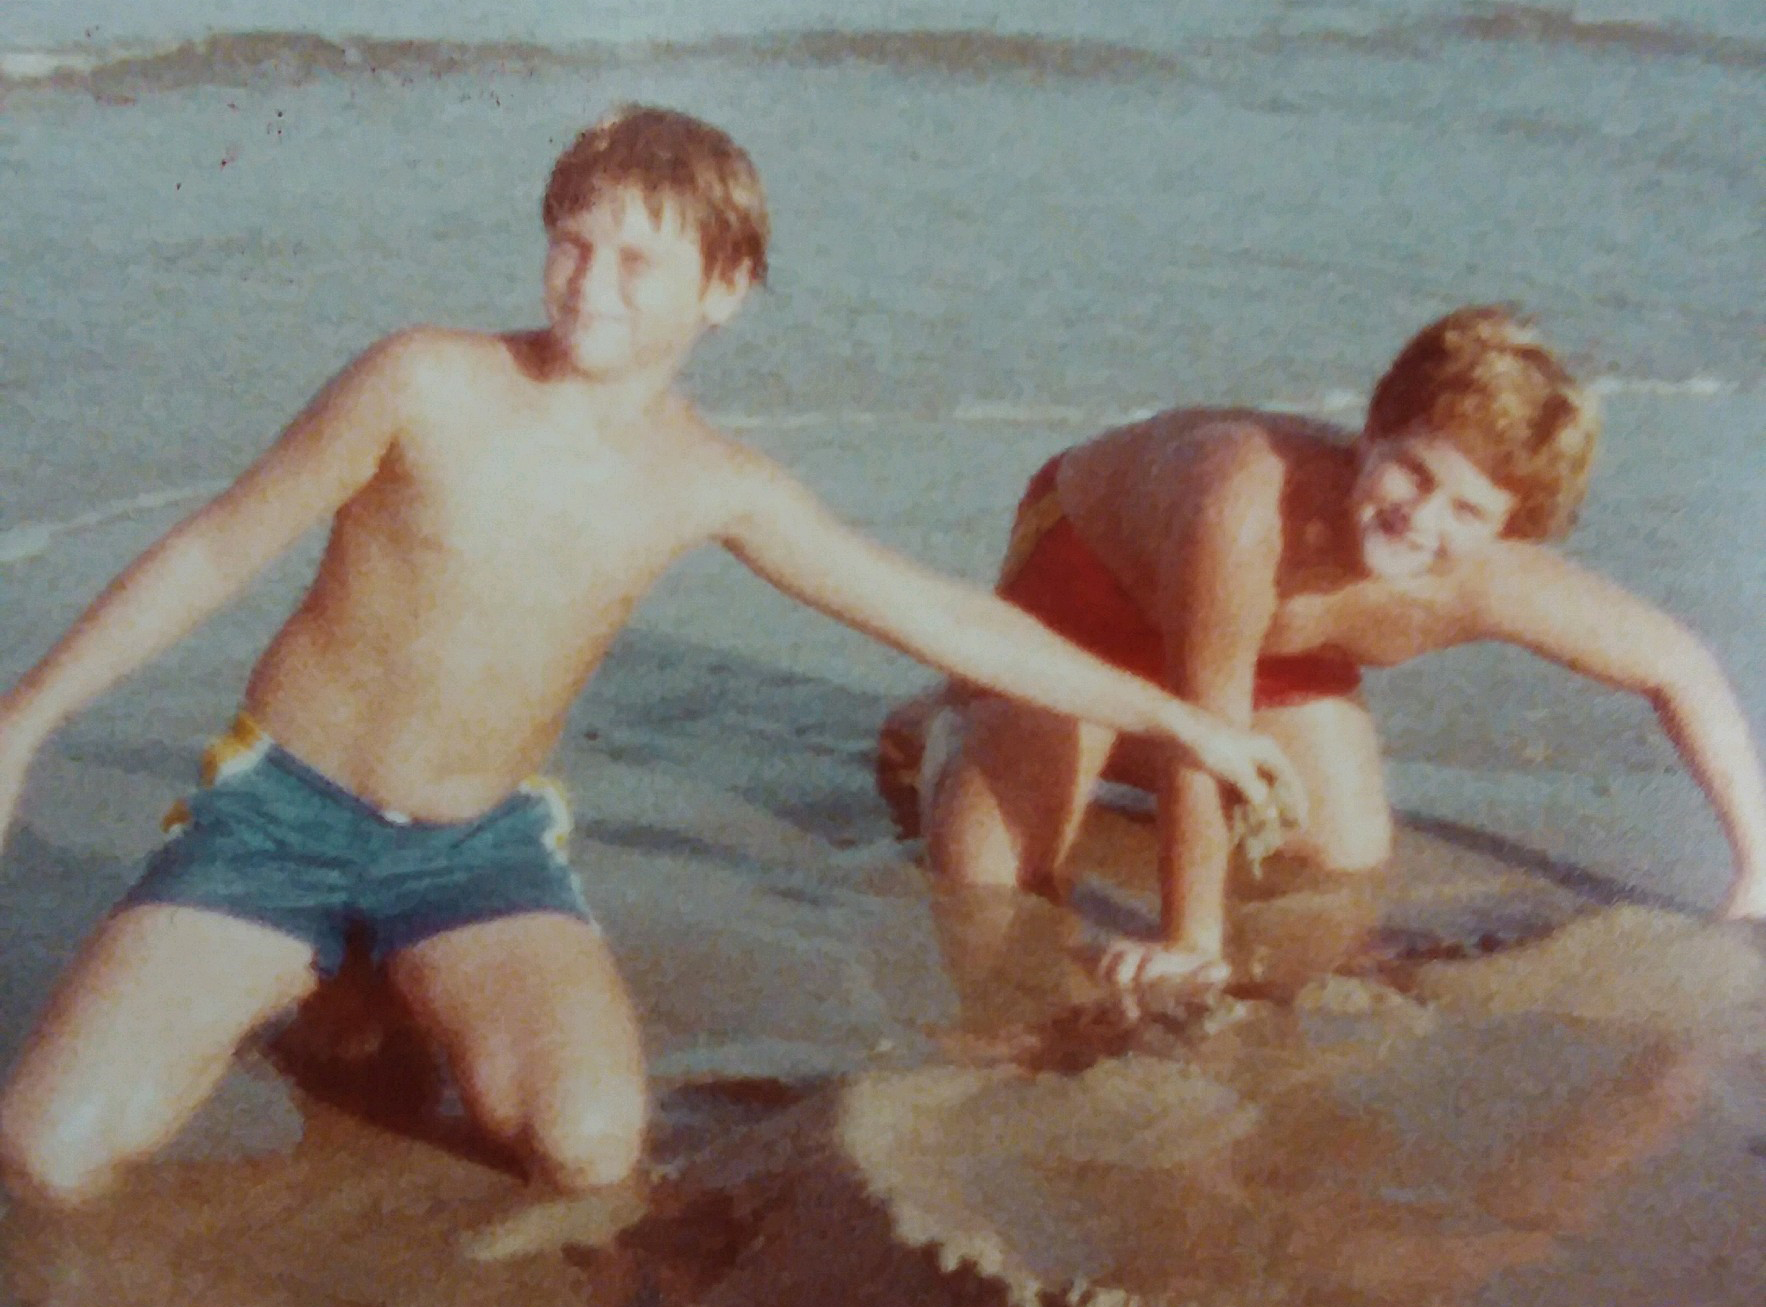 two smiling young boys playing in the sand at the beach